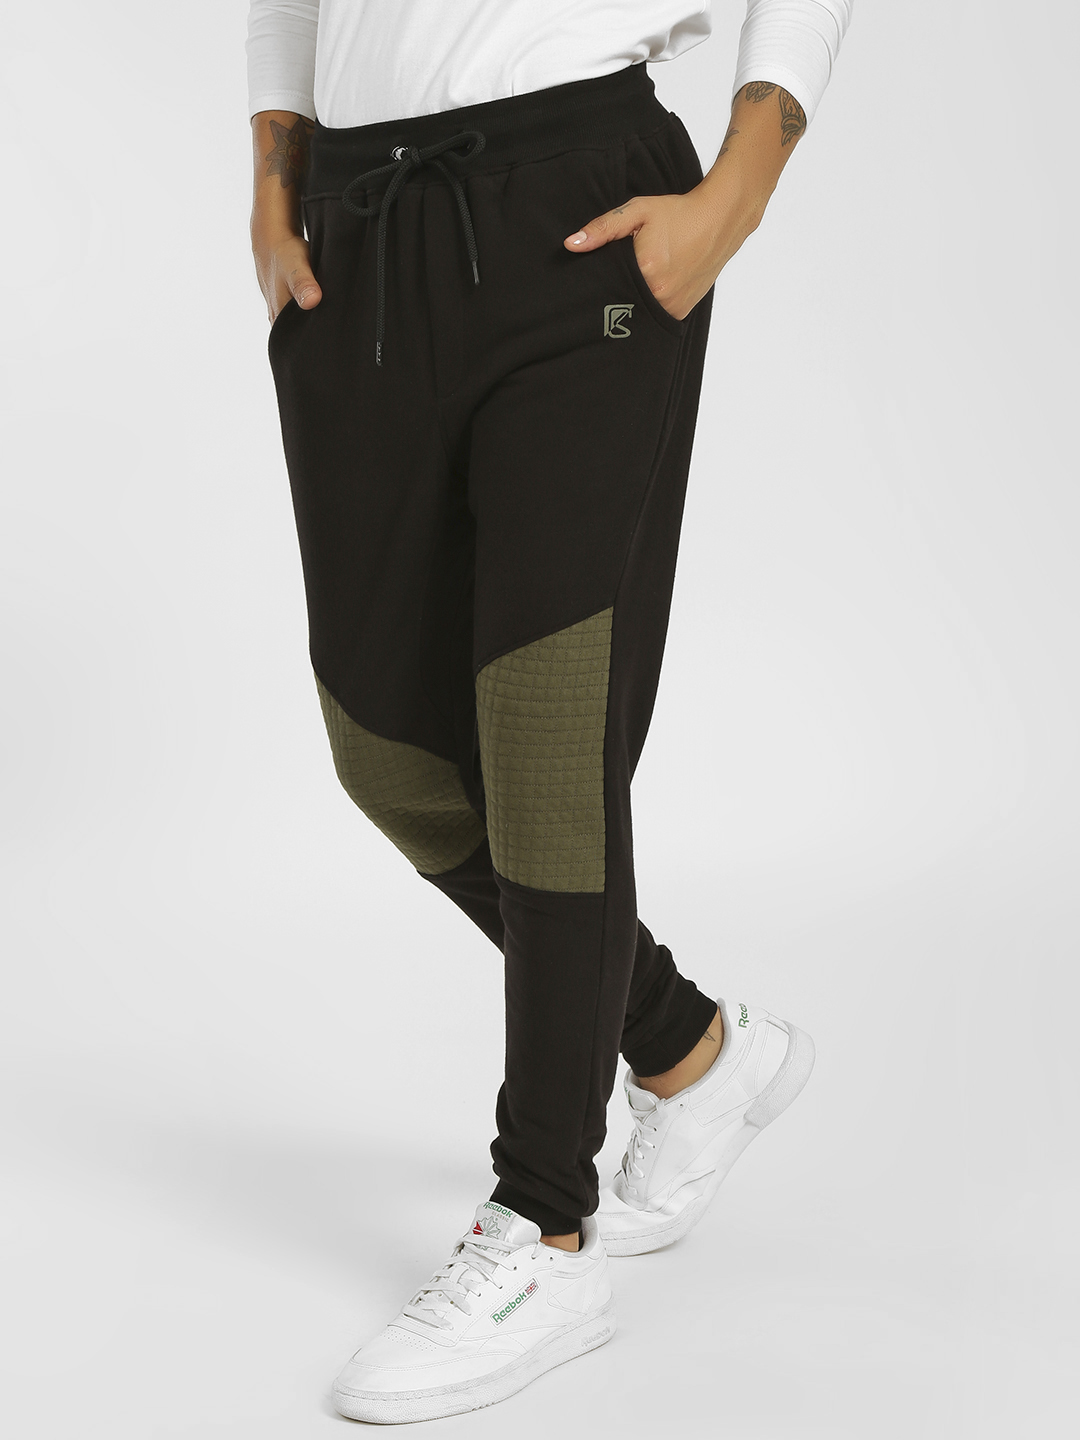 SKULT By Shahid Kapoor Black Quilted Biker Panel Joggers 1